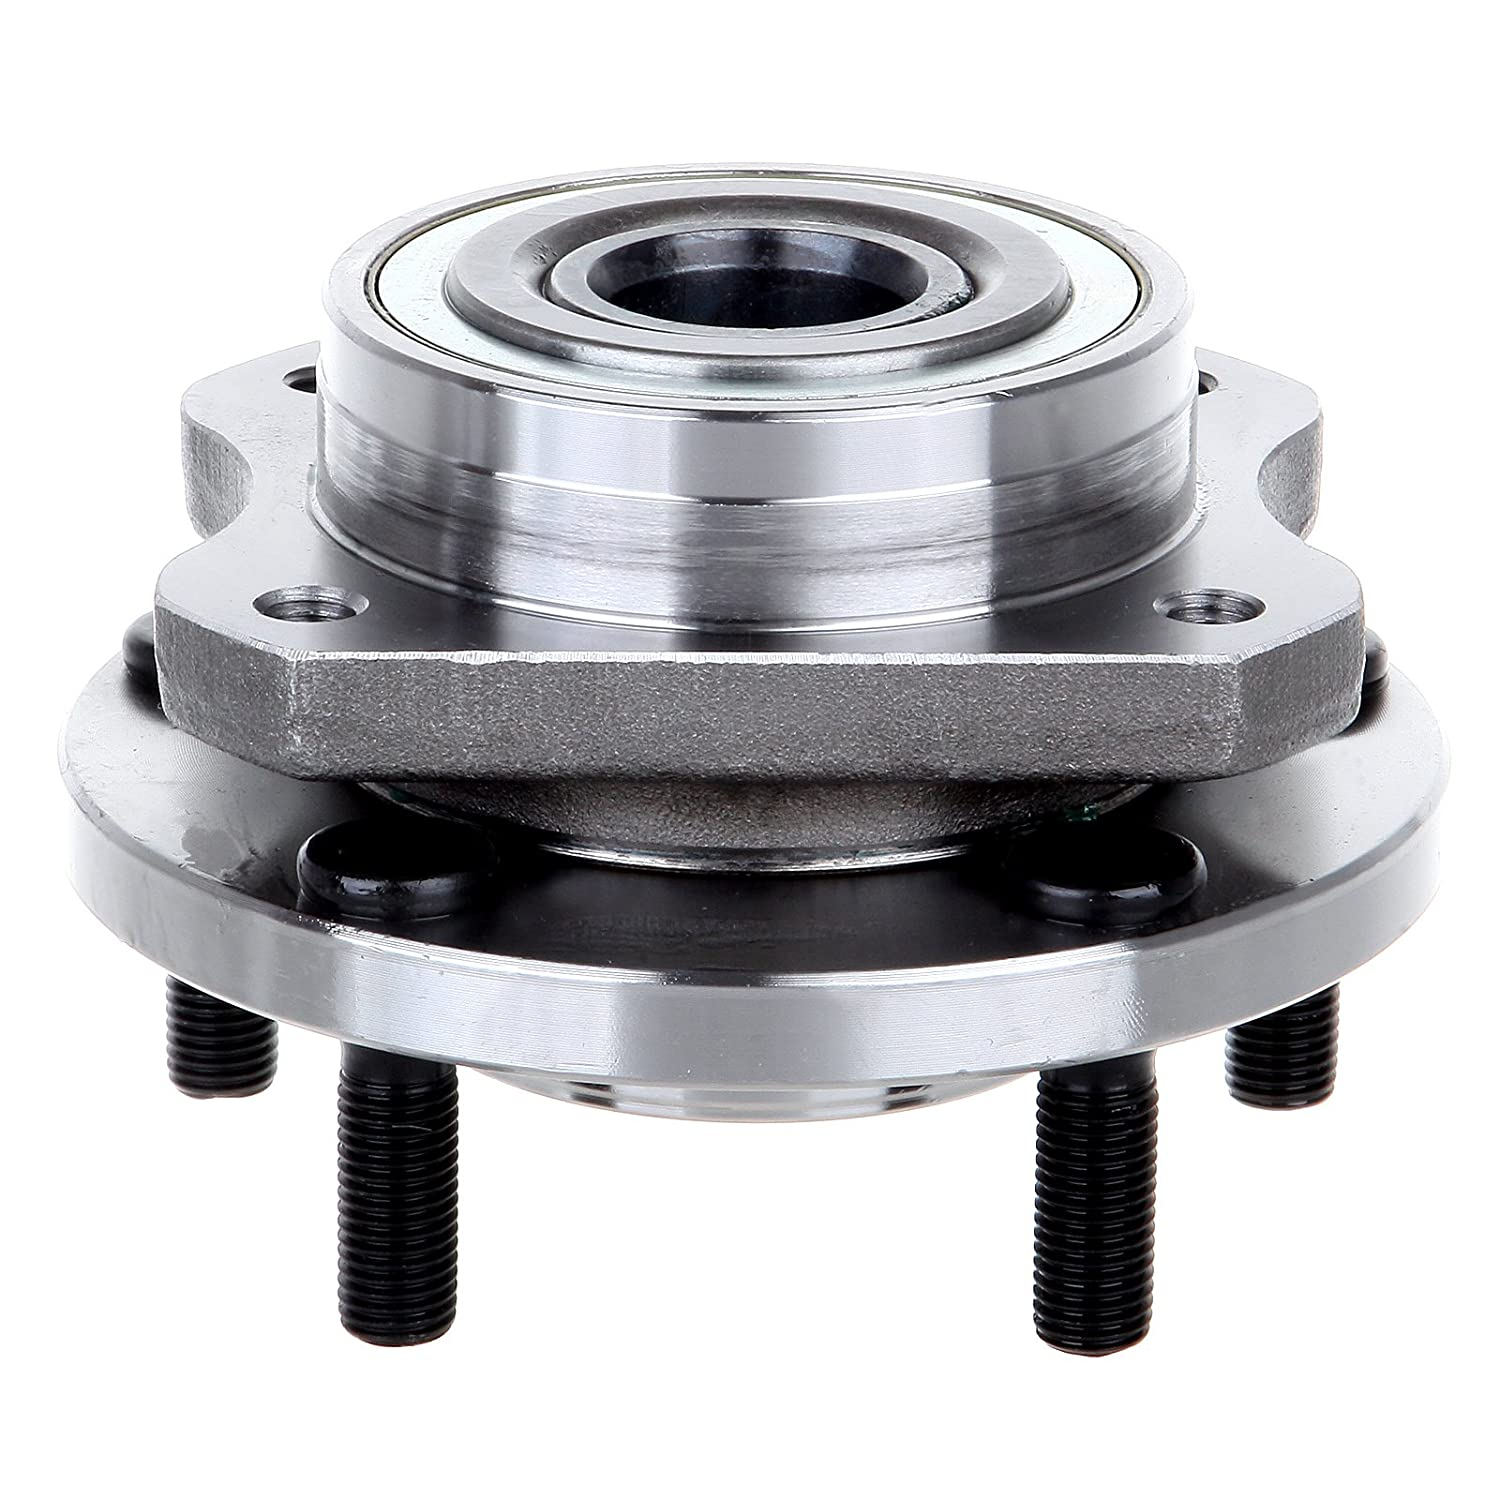 ECCPP Wheel Hub and Bearing Assembly Front 513123 fit 1996-2007 Plymouth Voyager Chrysler Dodge Caravan Replacement for 5 lugs wheel hubs no ABS 4 Bolt Flange